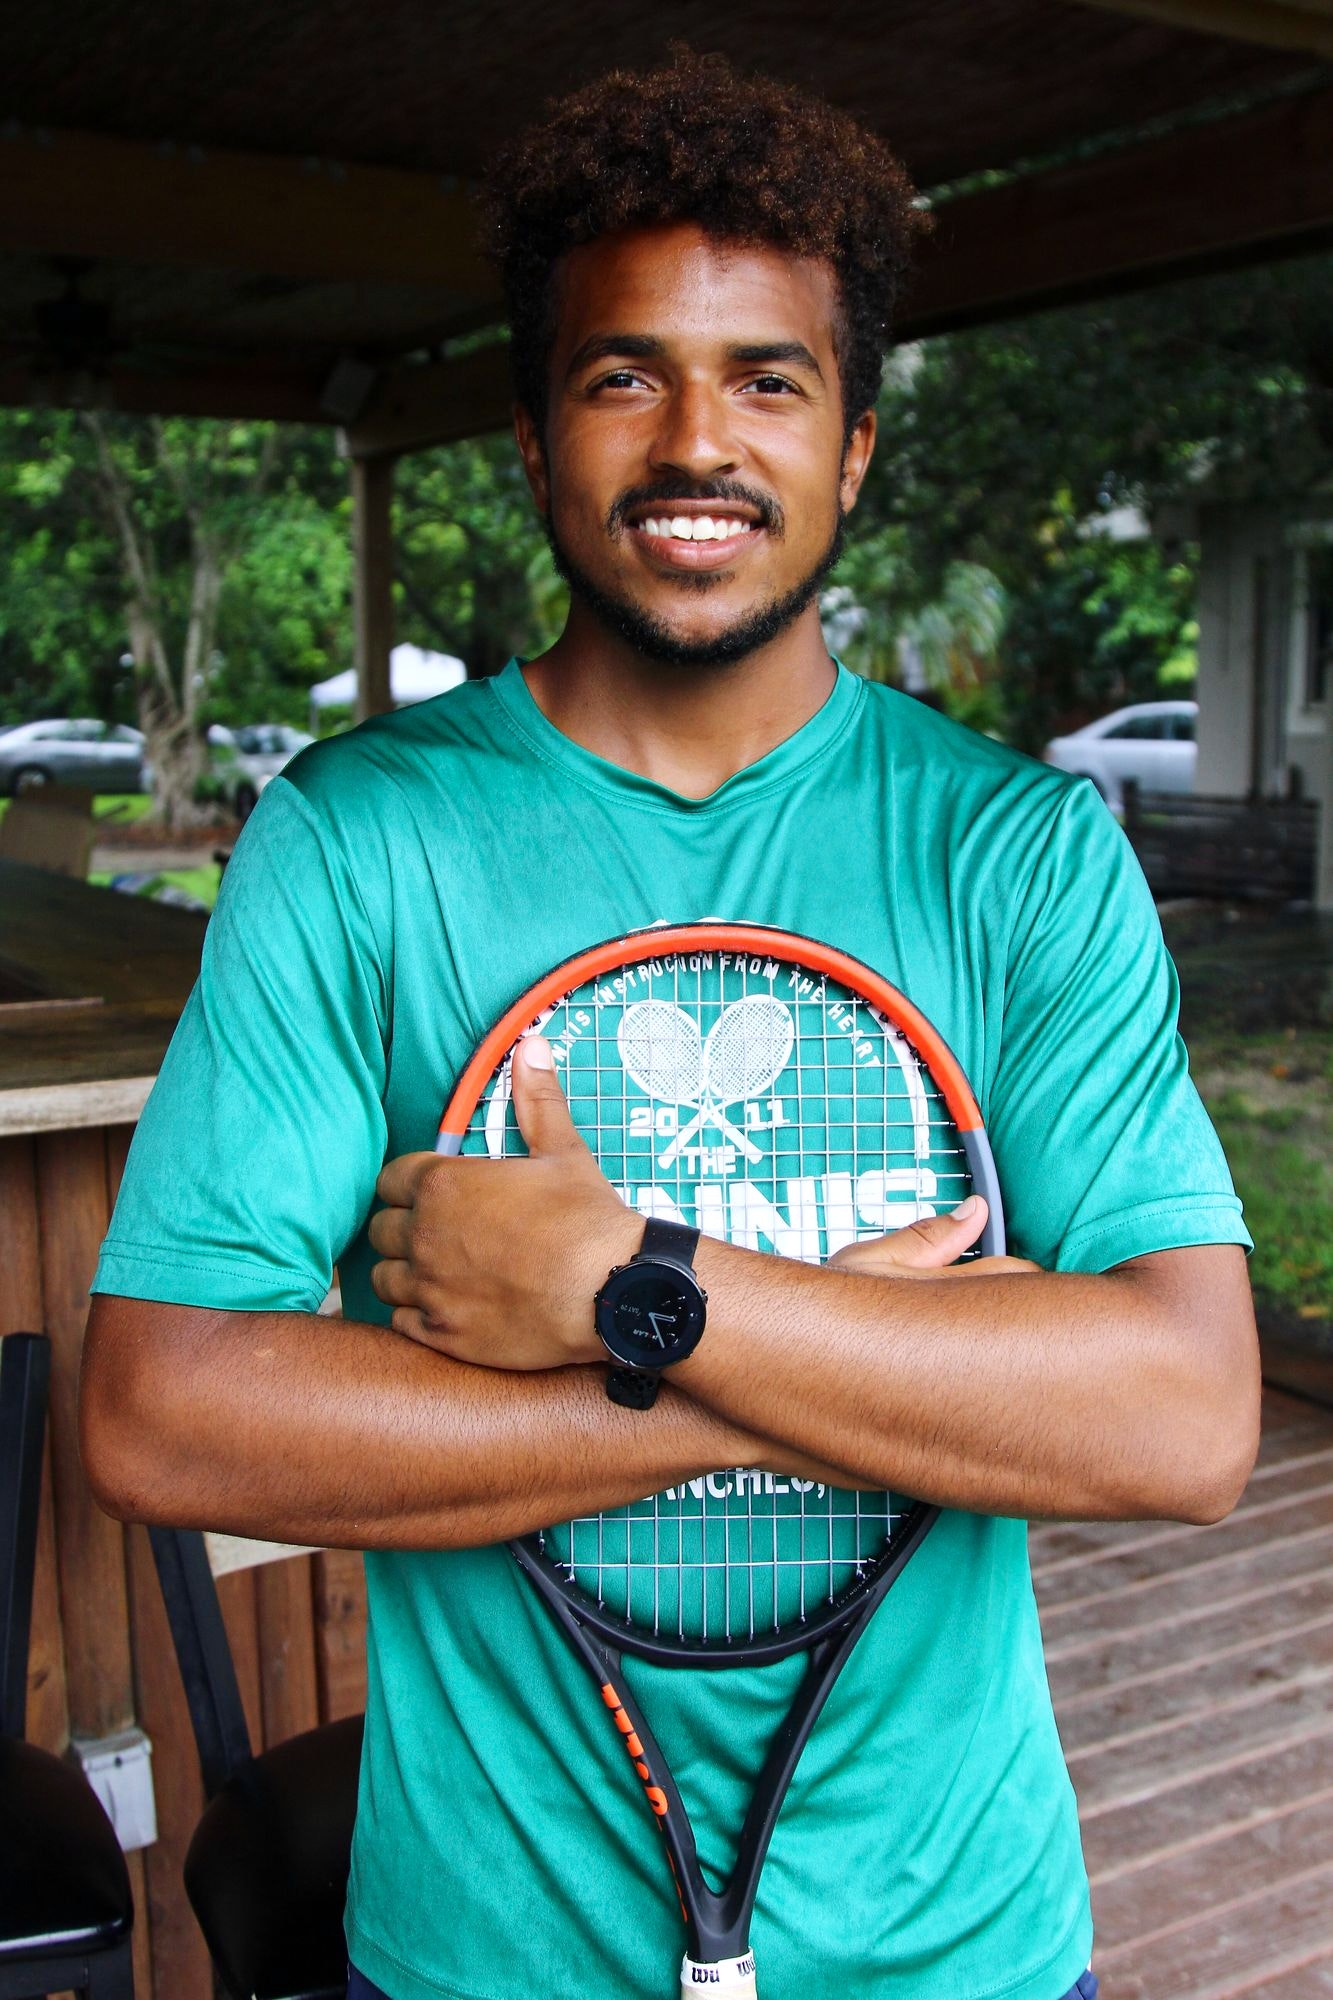 Joshua S. teaches tennis lessons in Davie, FL